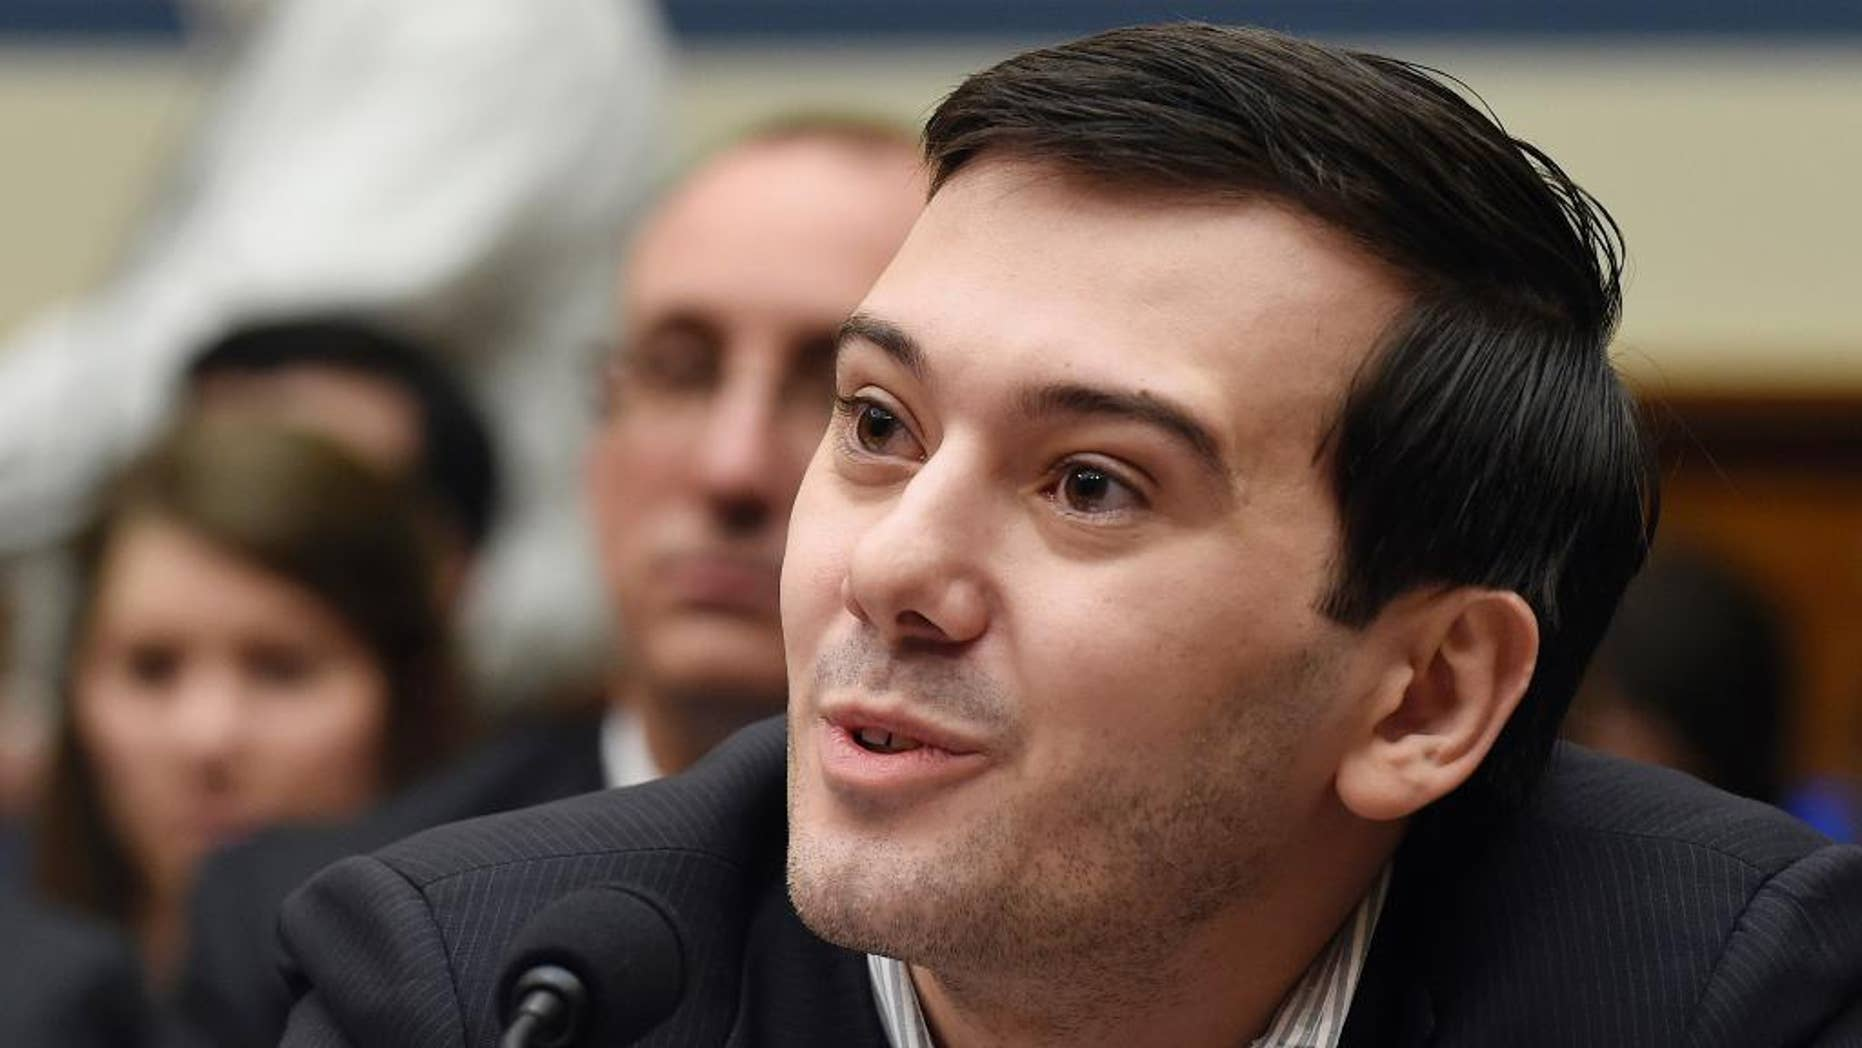 "FILE - In this Feb. 4, 2016 file photo, pharmaceutical chief Martin Shkreli speaks on Capitol Hill in Washington during the House Committee on Oversight and Reform Committee hearing on a decision by his former company, Turing Pharmaceuticals, to significantly raise the price of the anti-parasitic medication Daraprim. Heated protests at the University of California, Davis brought the cancellation of planned speeches by far-right commentator Milo Yiannopoulos and former pharmaceutical executive Shkreli shortly before the event was to begin. University police put up barricades as protesters shouting ""shut it down"" grew increasingly rowdy in the hours leading up to the talks on Friday night, Jan. 13, 2017. (AP Photo/Susan Walsh, File)"